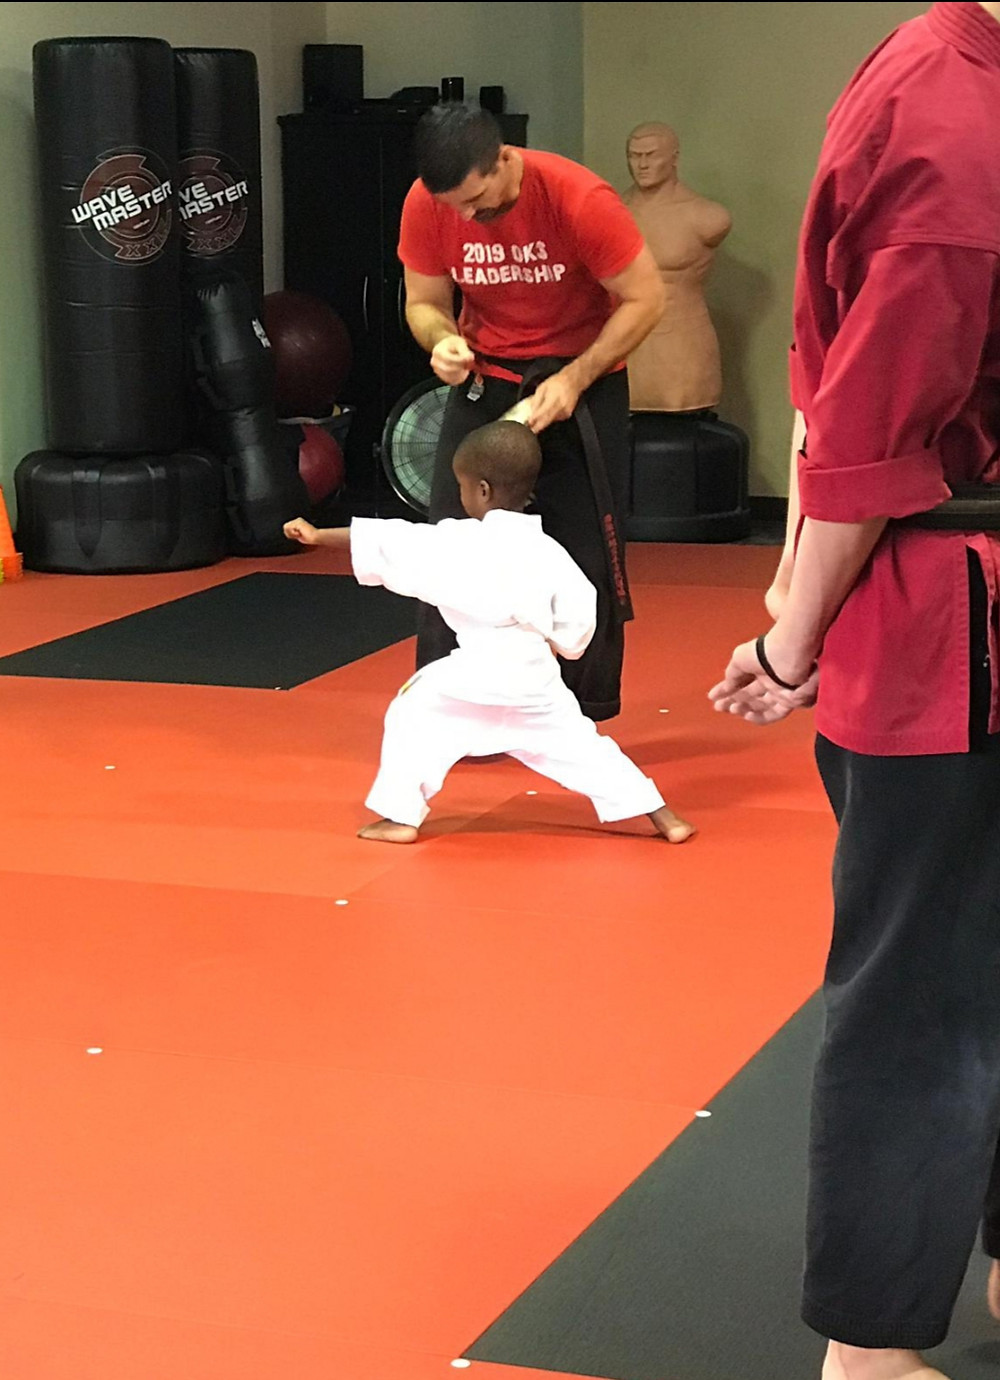 learning how to love fitness and exercise with karate at OKS macon